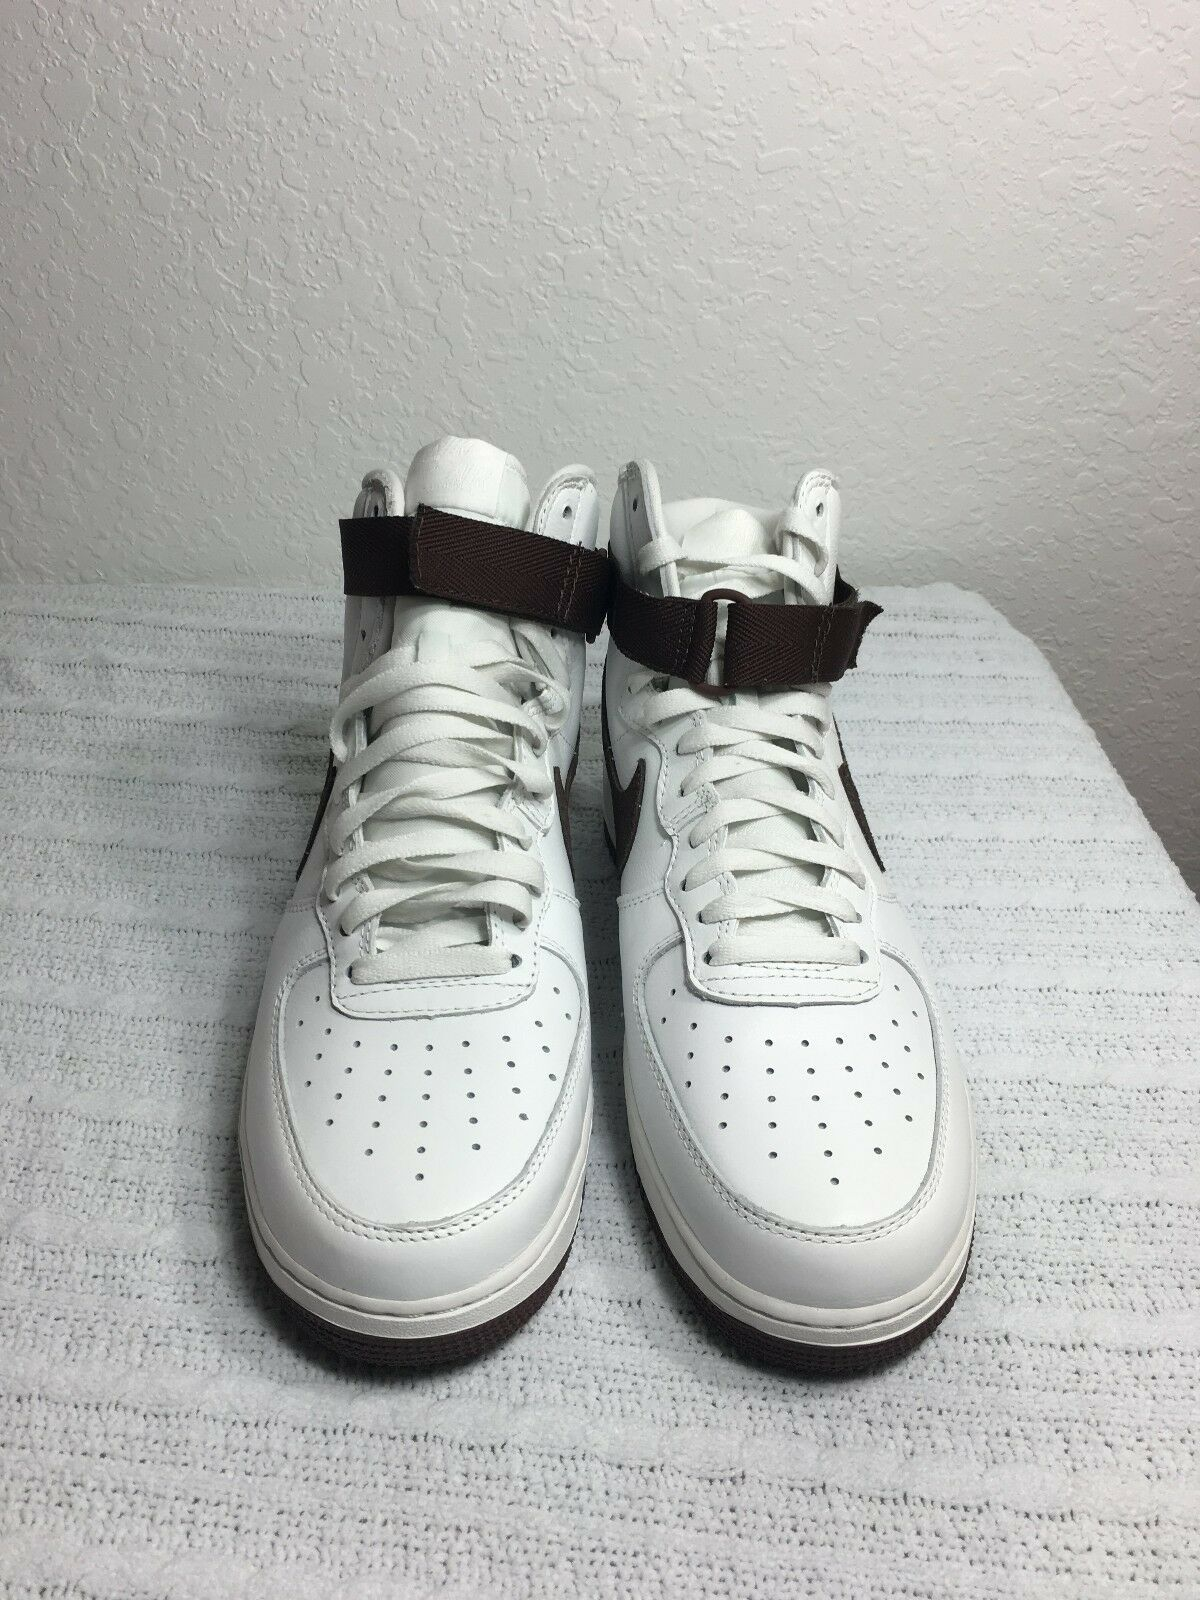 Nike Air Force 1 Hi Retro Qs WHITECHOCOLATE and 50 similar